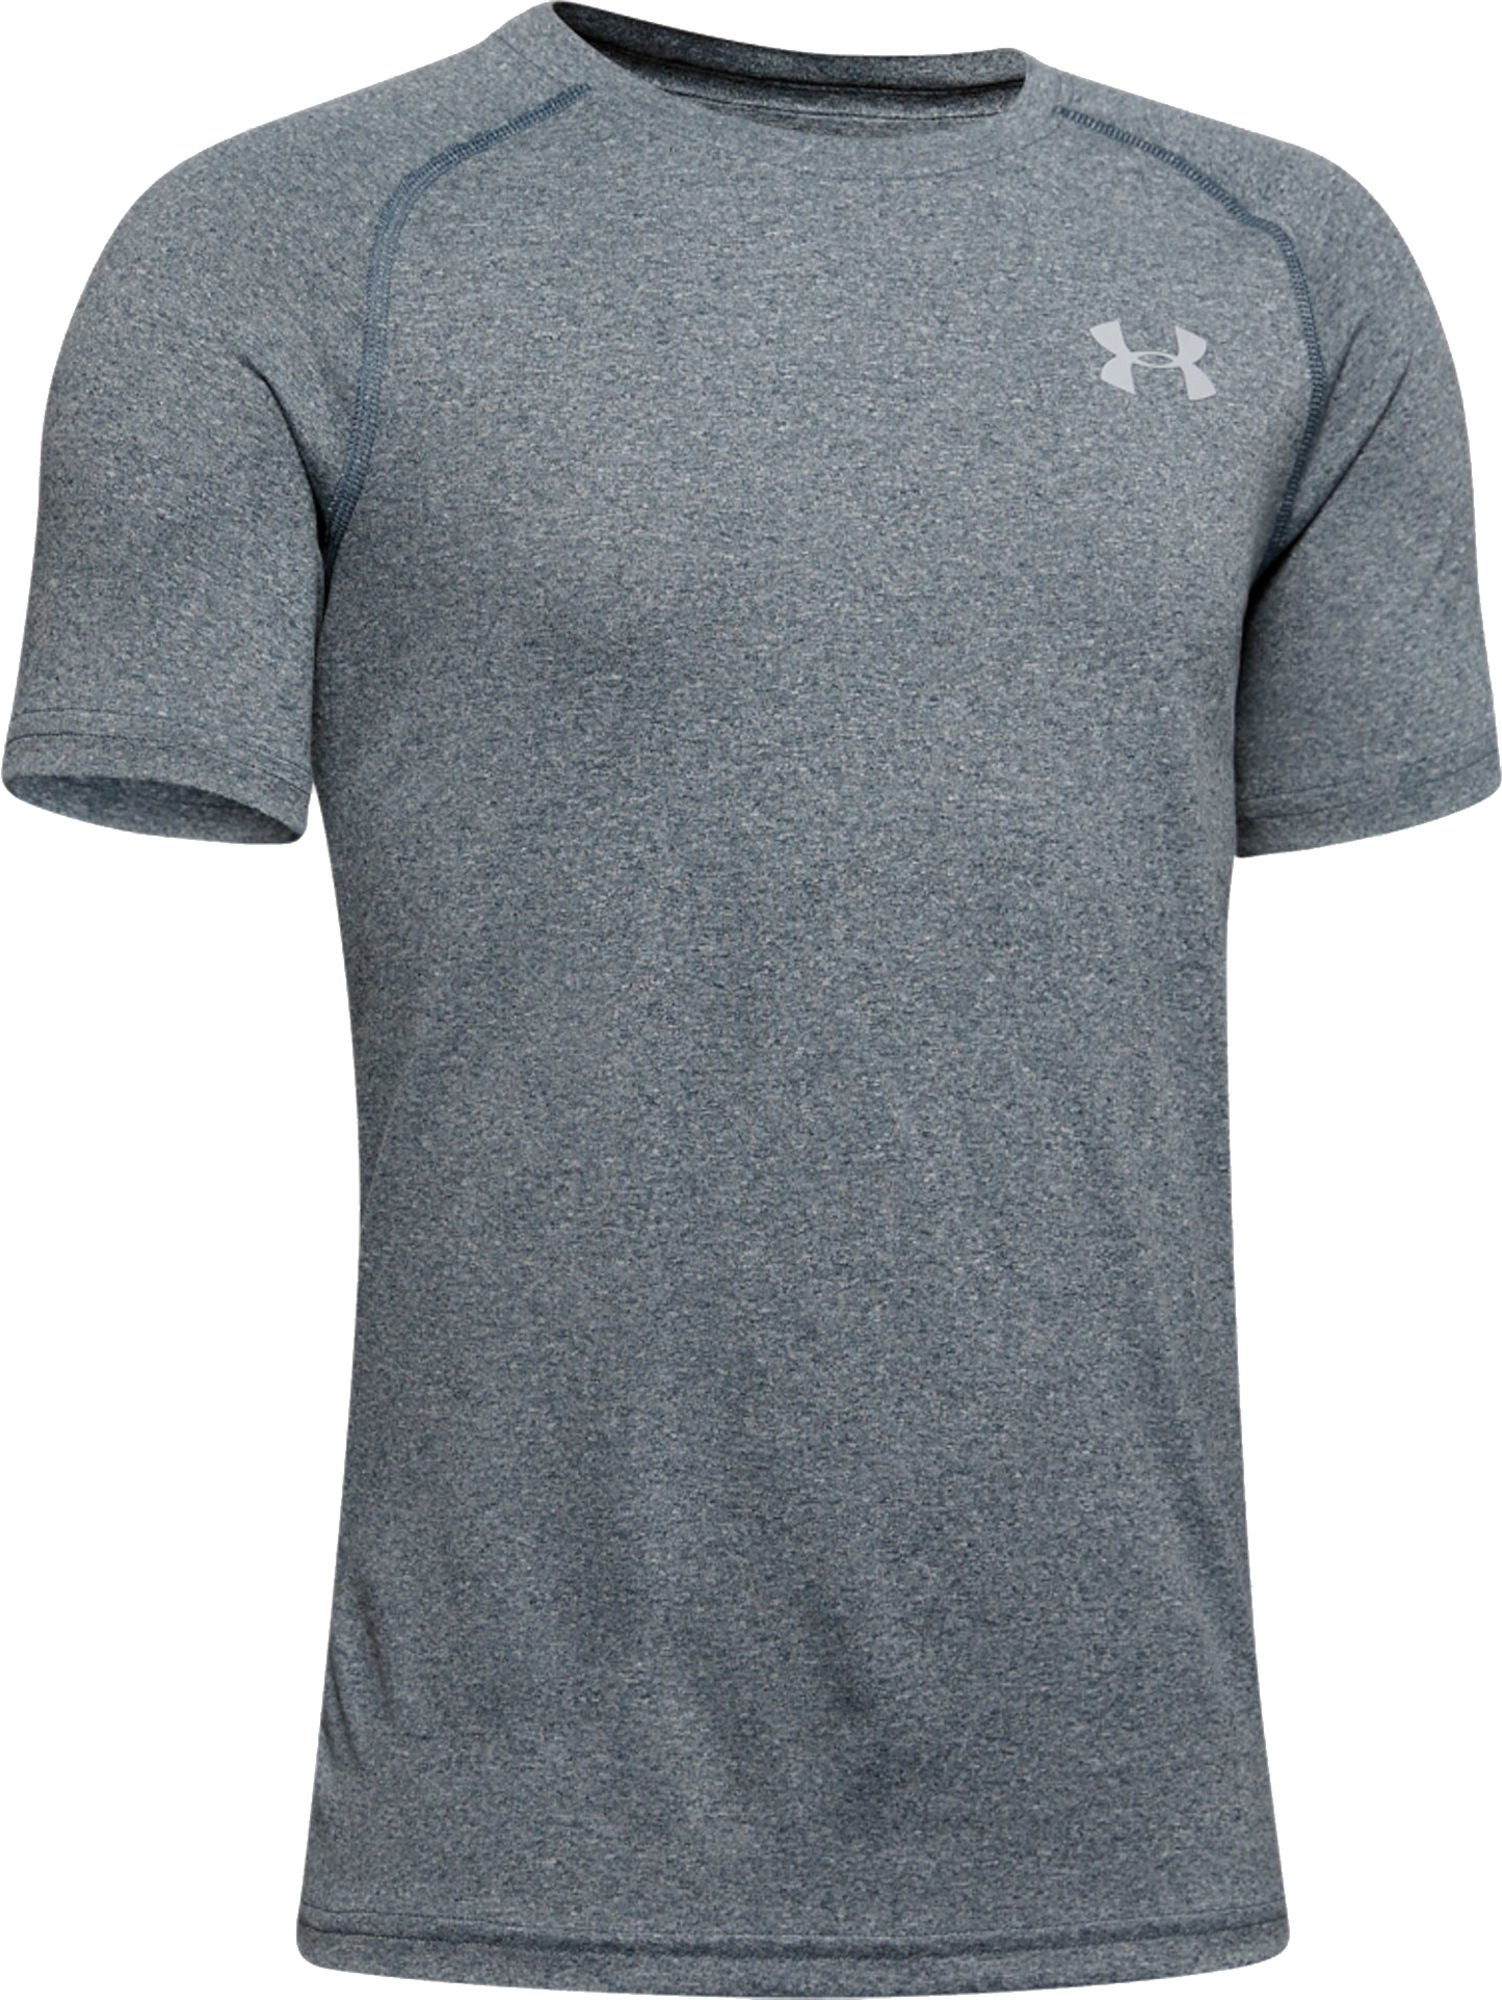 Under Armour Tech T-Shirt, Wire L